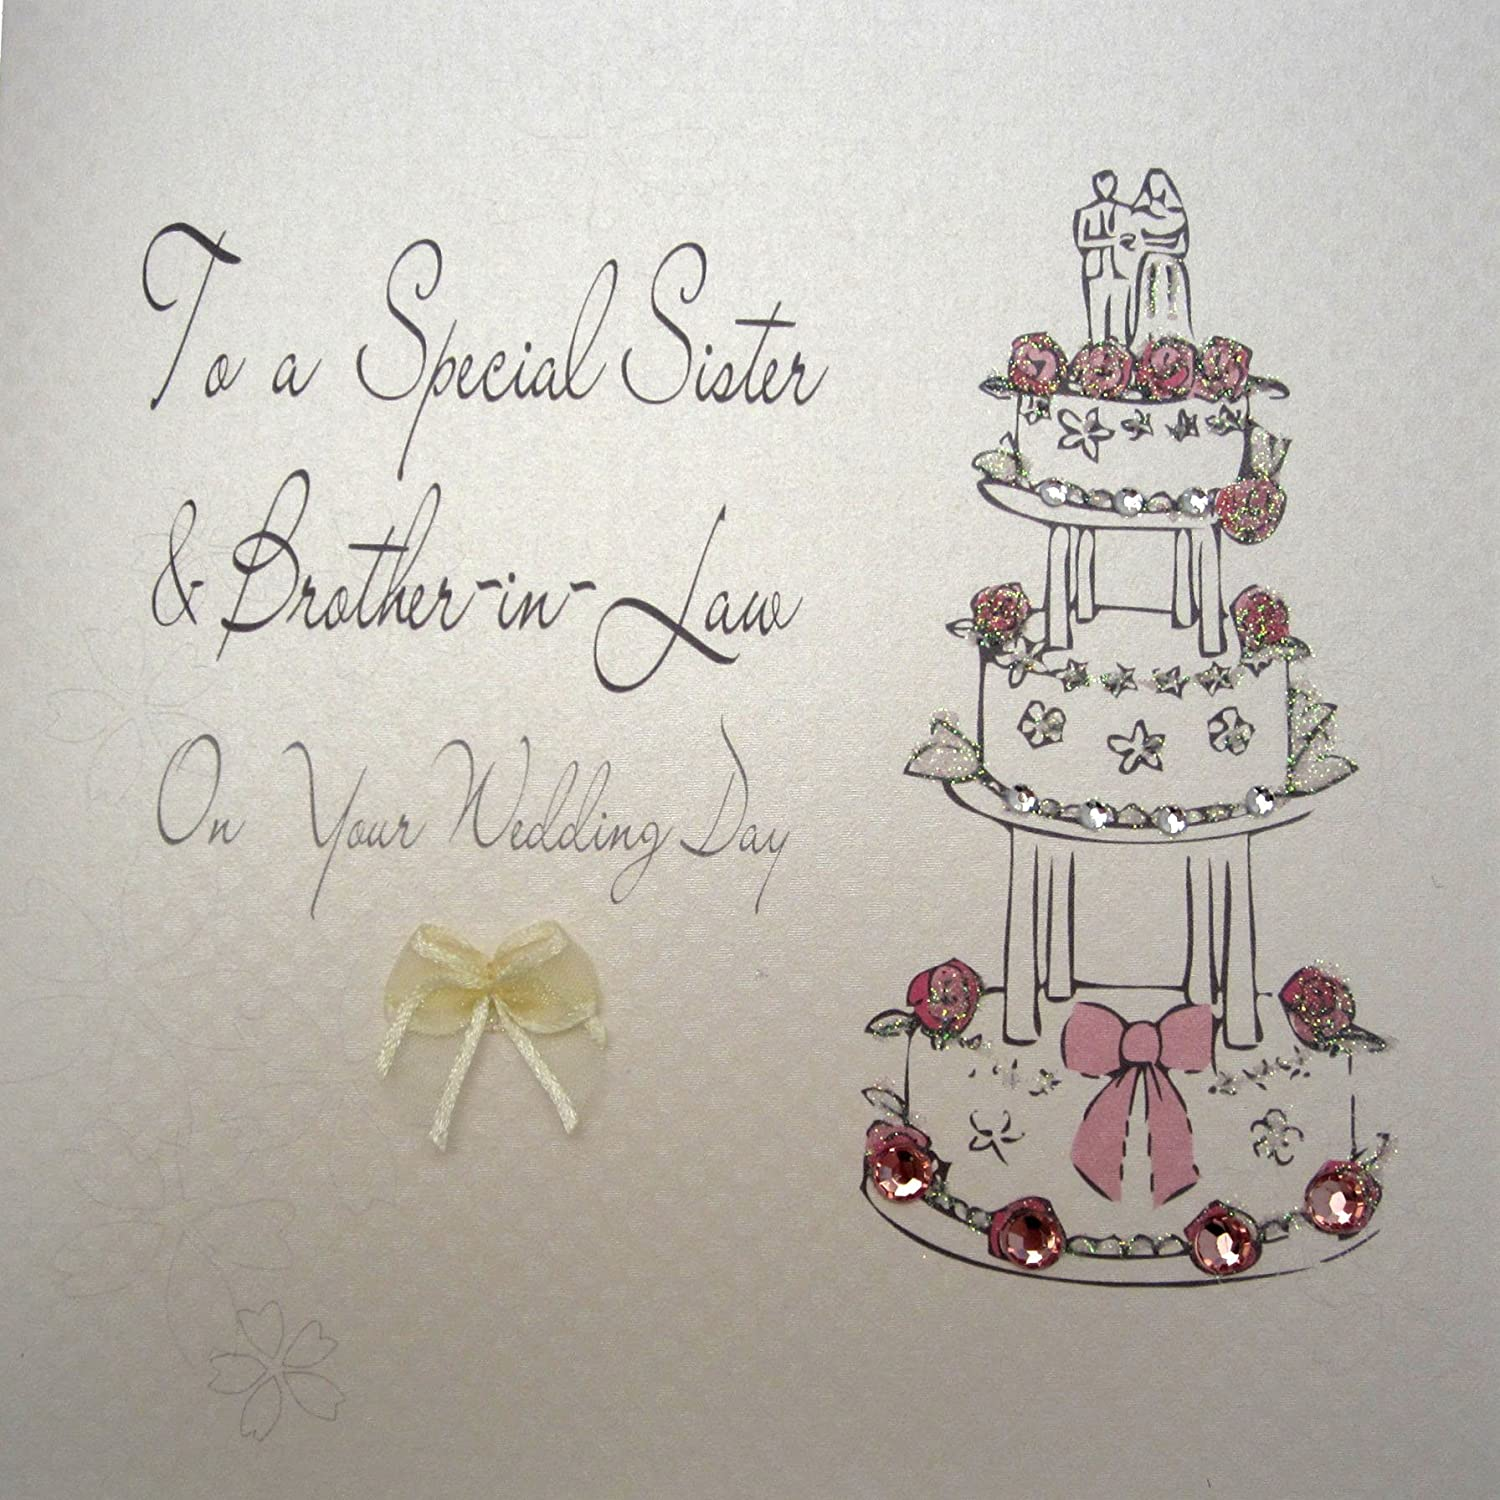 WHITE COTTON CARDS BD26 To A Special Sister and Brother-in-Law Congratulations on Your wedding Day